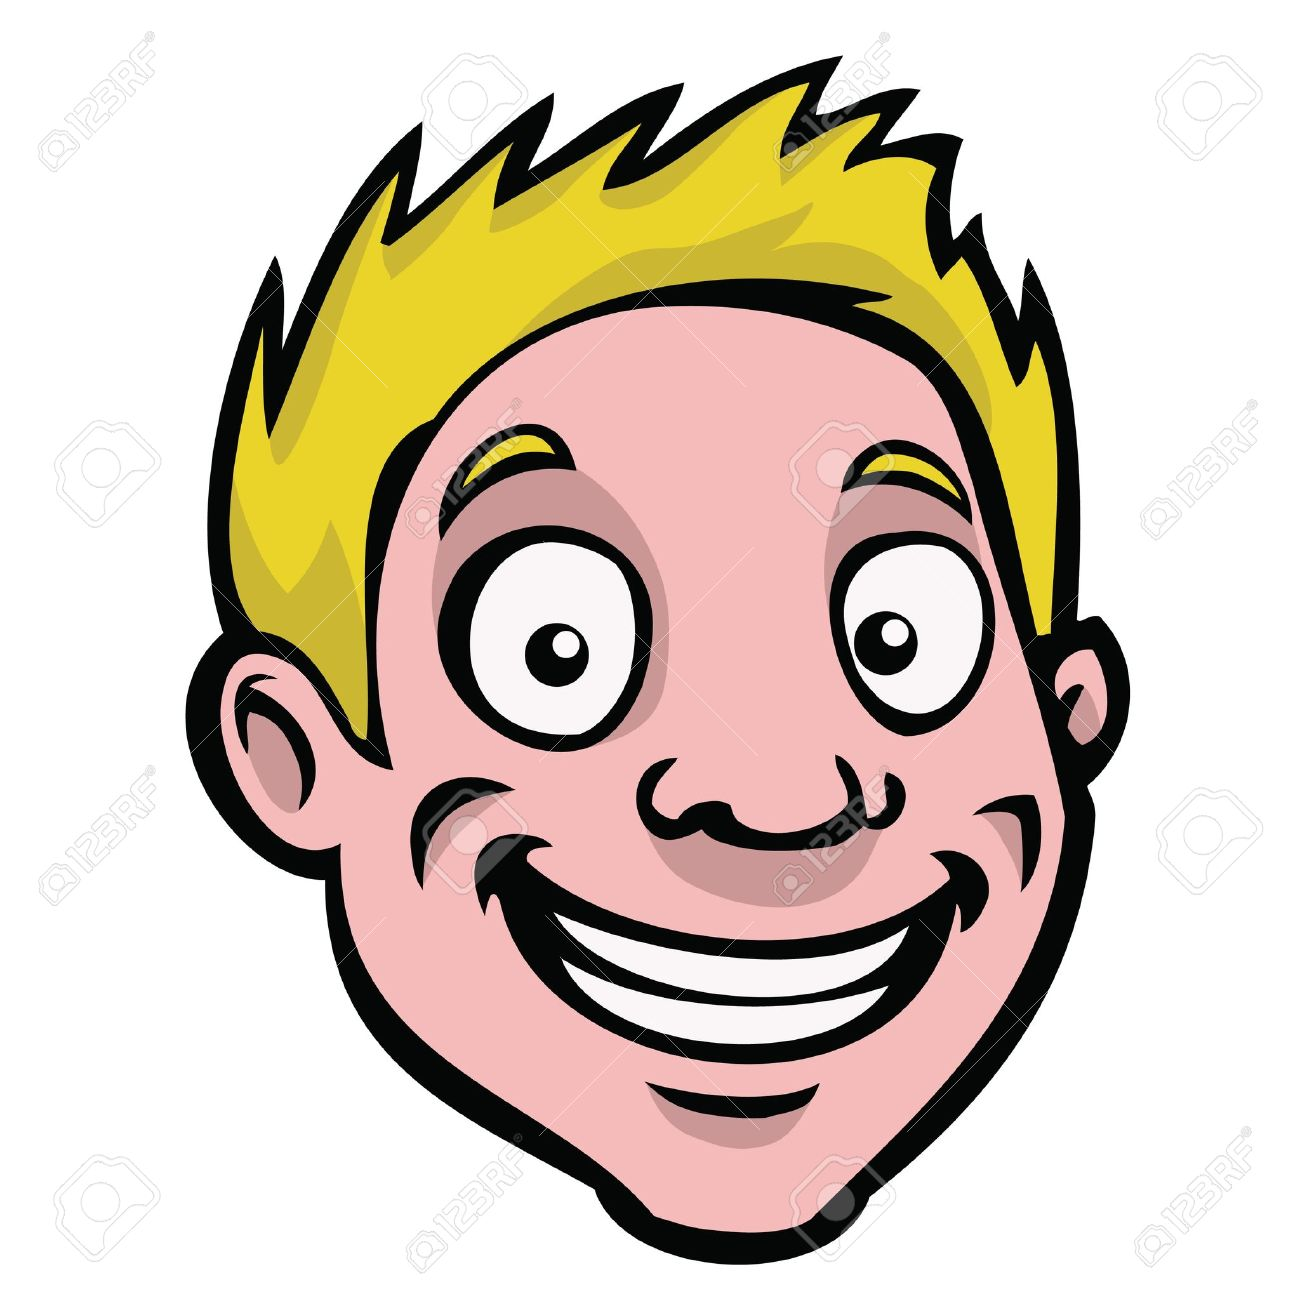 A happy, smiling cartoon guy with blonde hair..